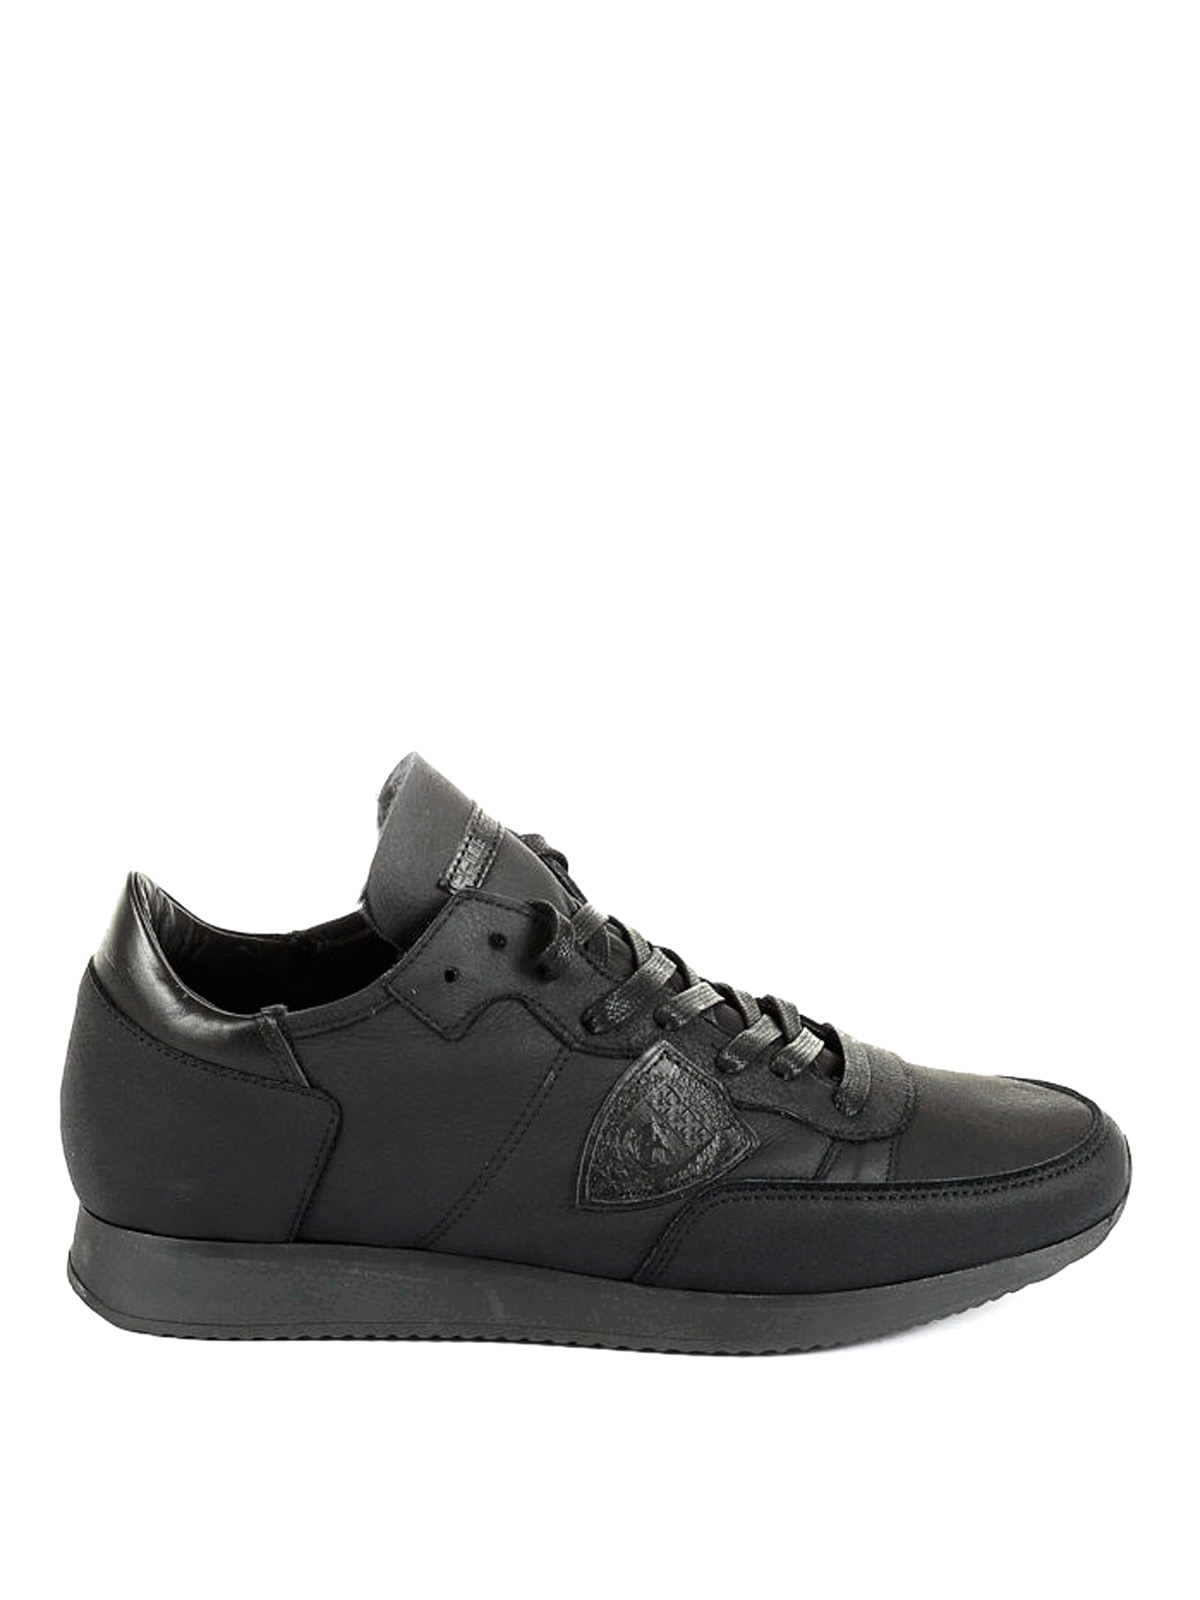 tropez leather low top sneakers by philippe model trainers ikrix. Black Bedroom Furniture Sets. Home Design Ideas